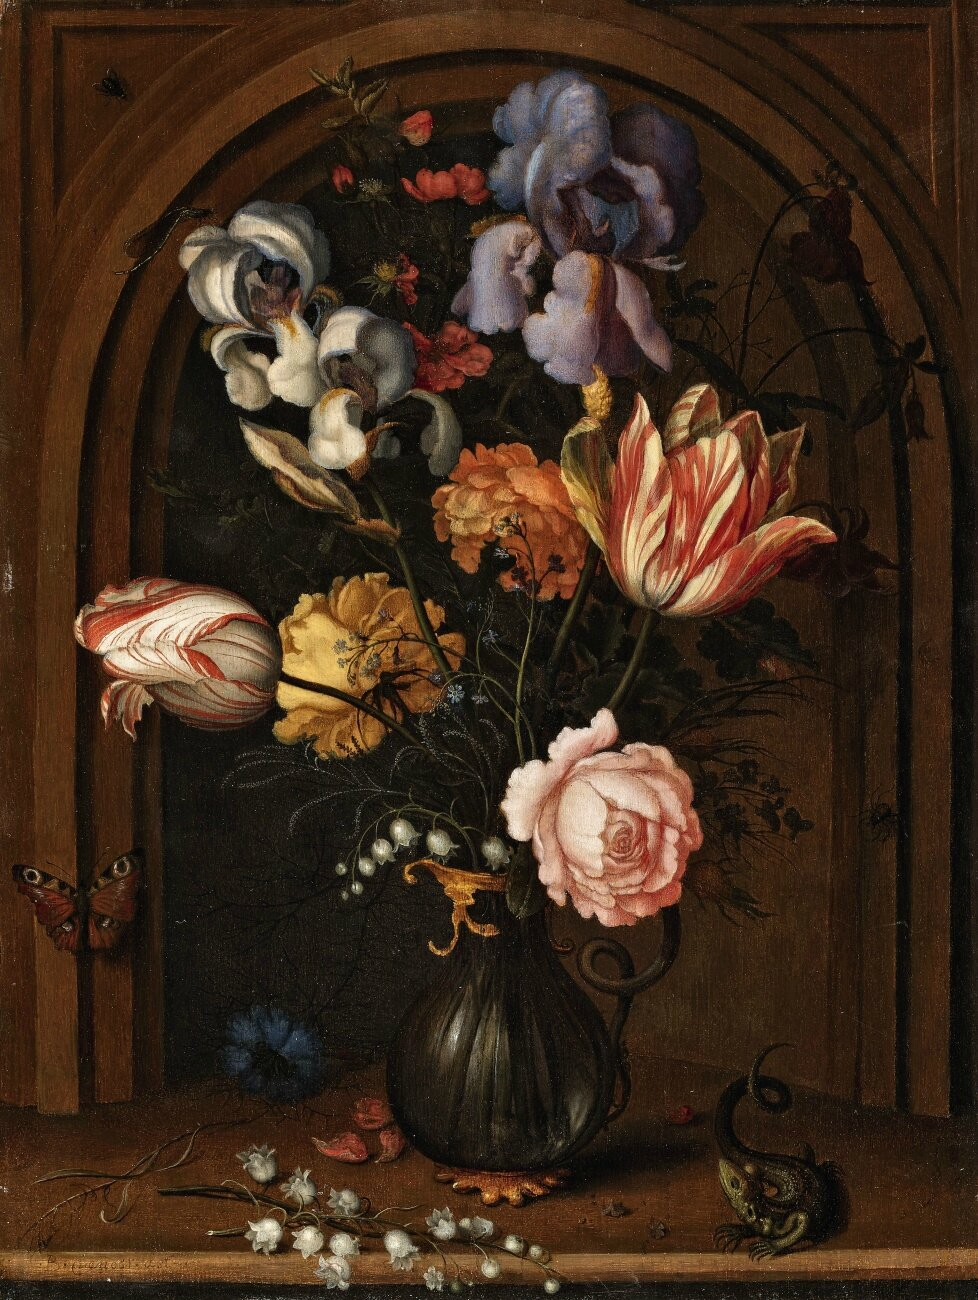 Balthasar van der Ast, A Vase of Flowers in a Niche with a Butterfly, Fly, Dragonfly and a Lizard